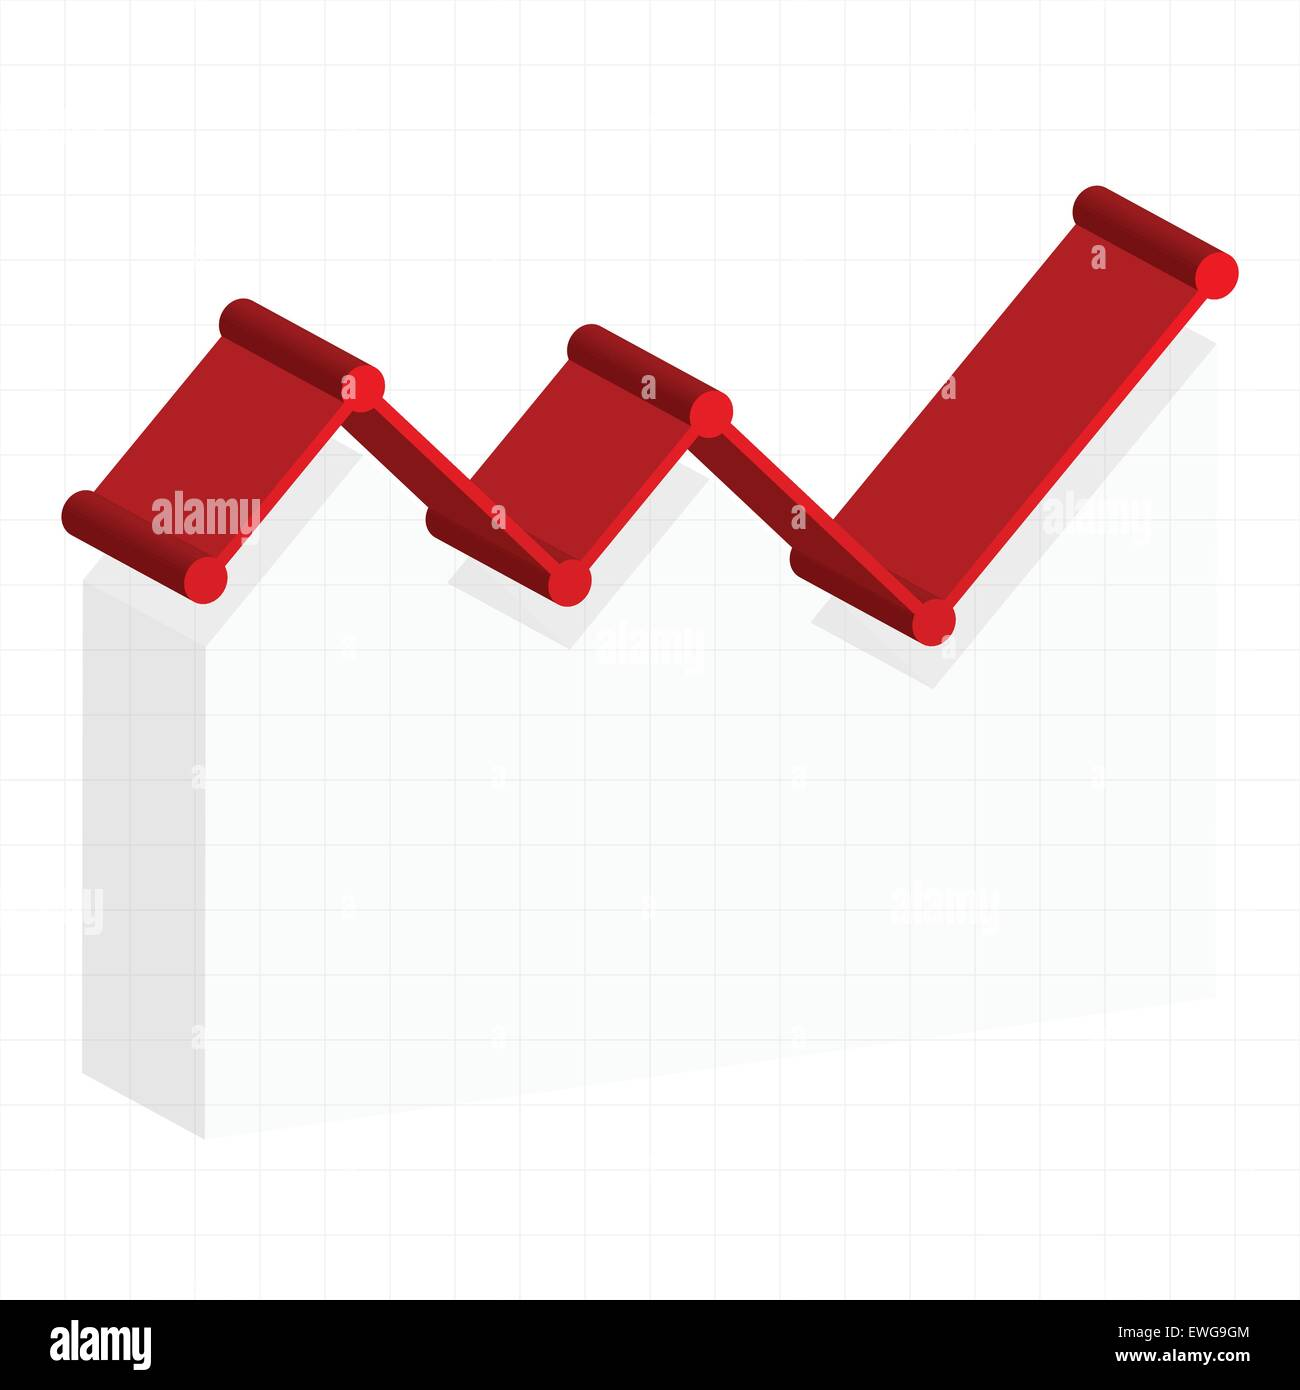 line graph element. graph, chart over gridded background. 3d stock